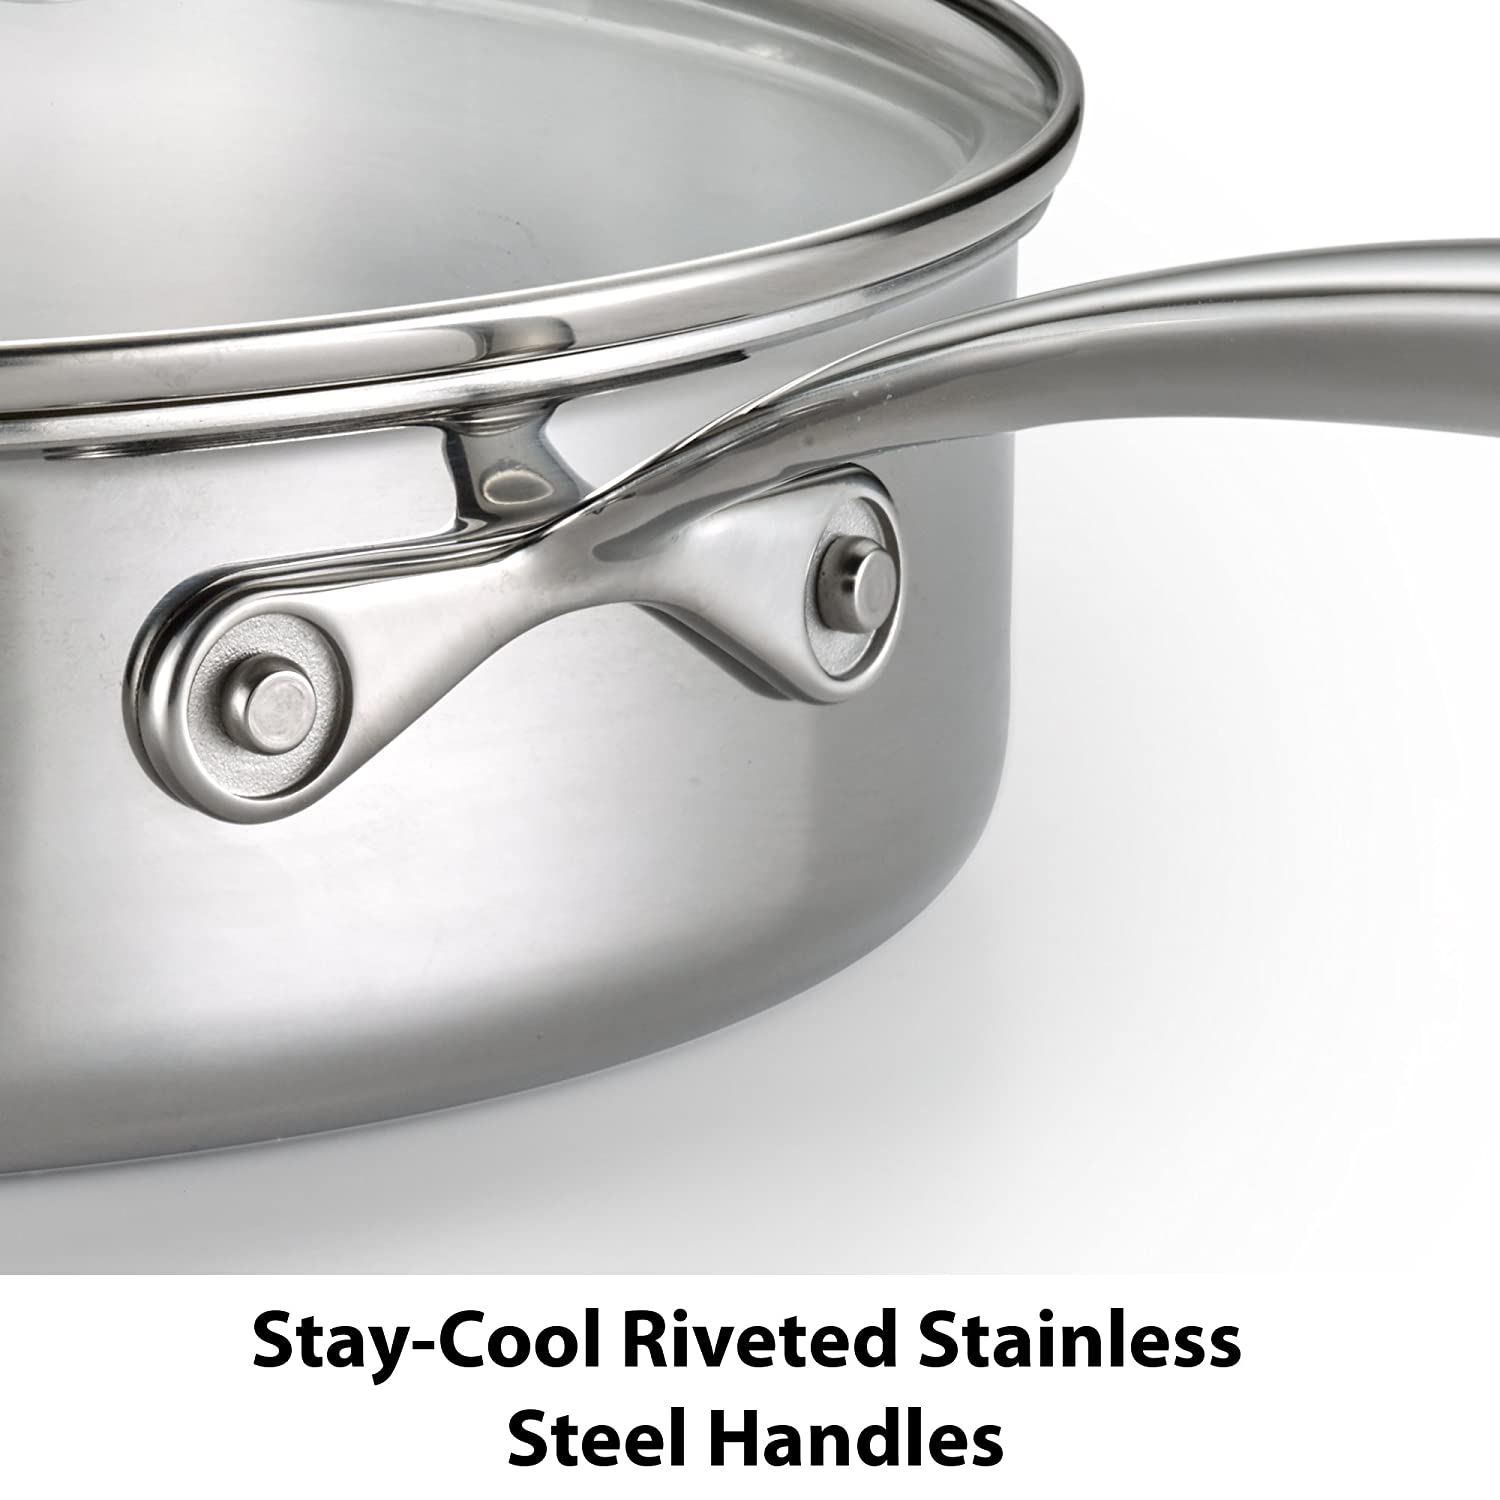 Silver 2100103838 Lagostina Q939SC64 Tri-Ply Stainless Steel Multiclad Dishwasher Safe Oven Safe Glass Lid Cookware Set 12-Piece